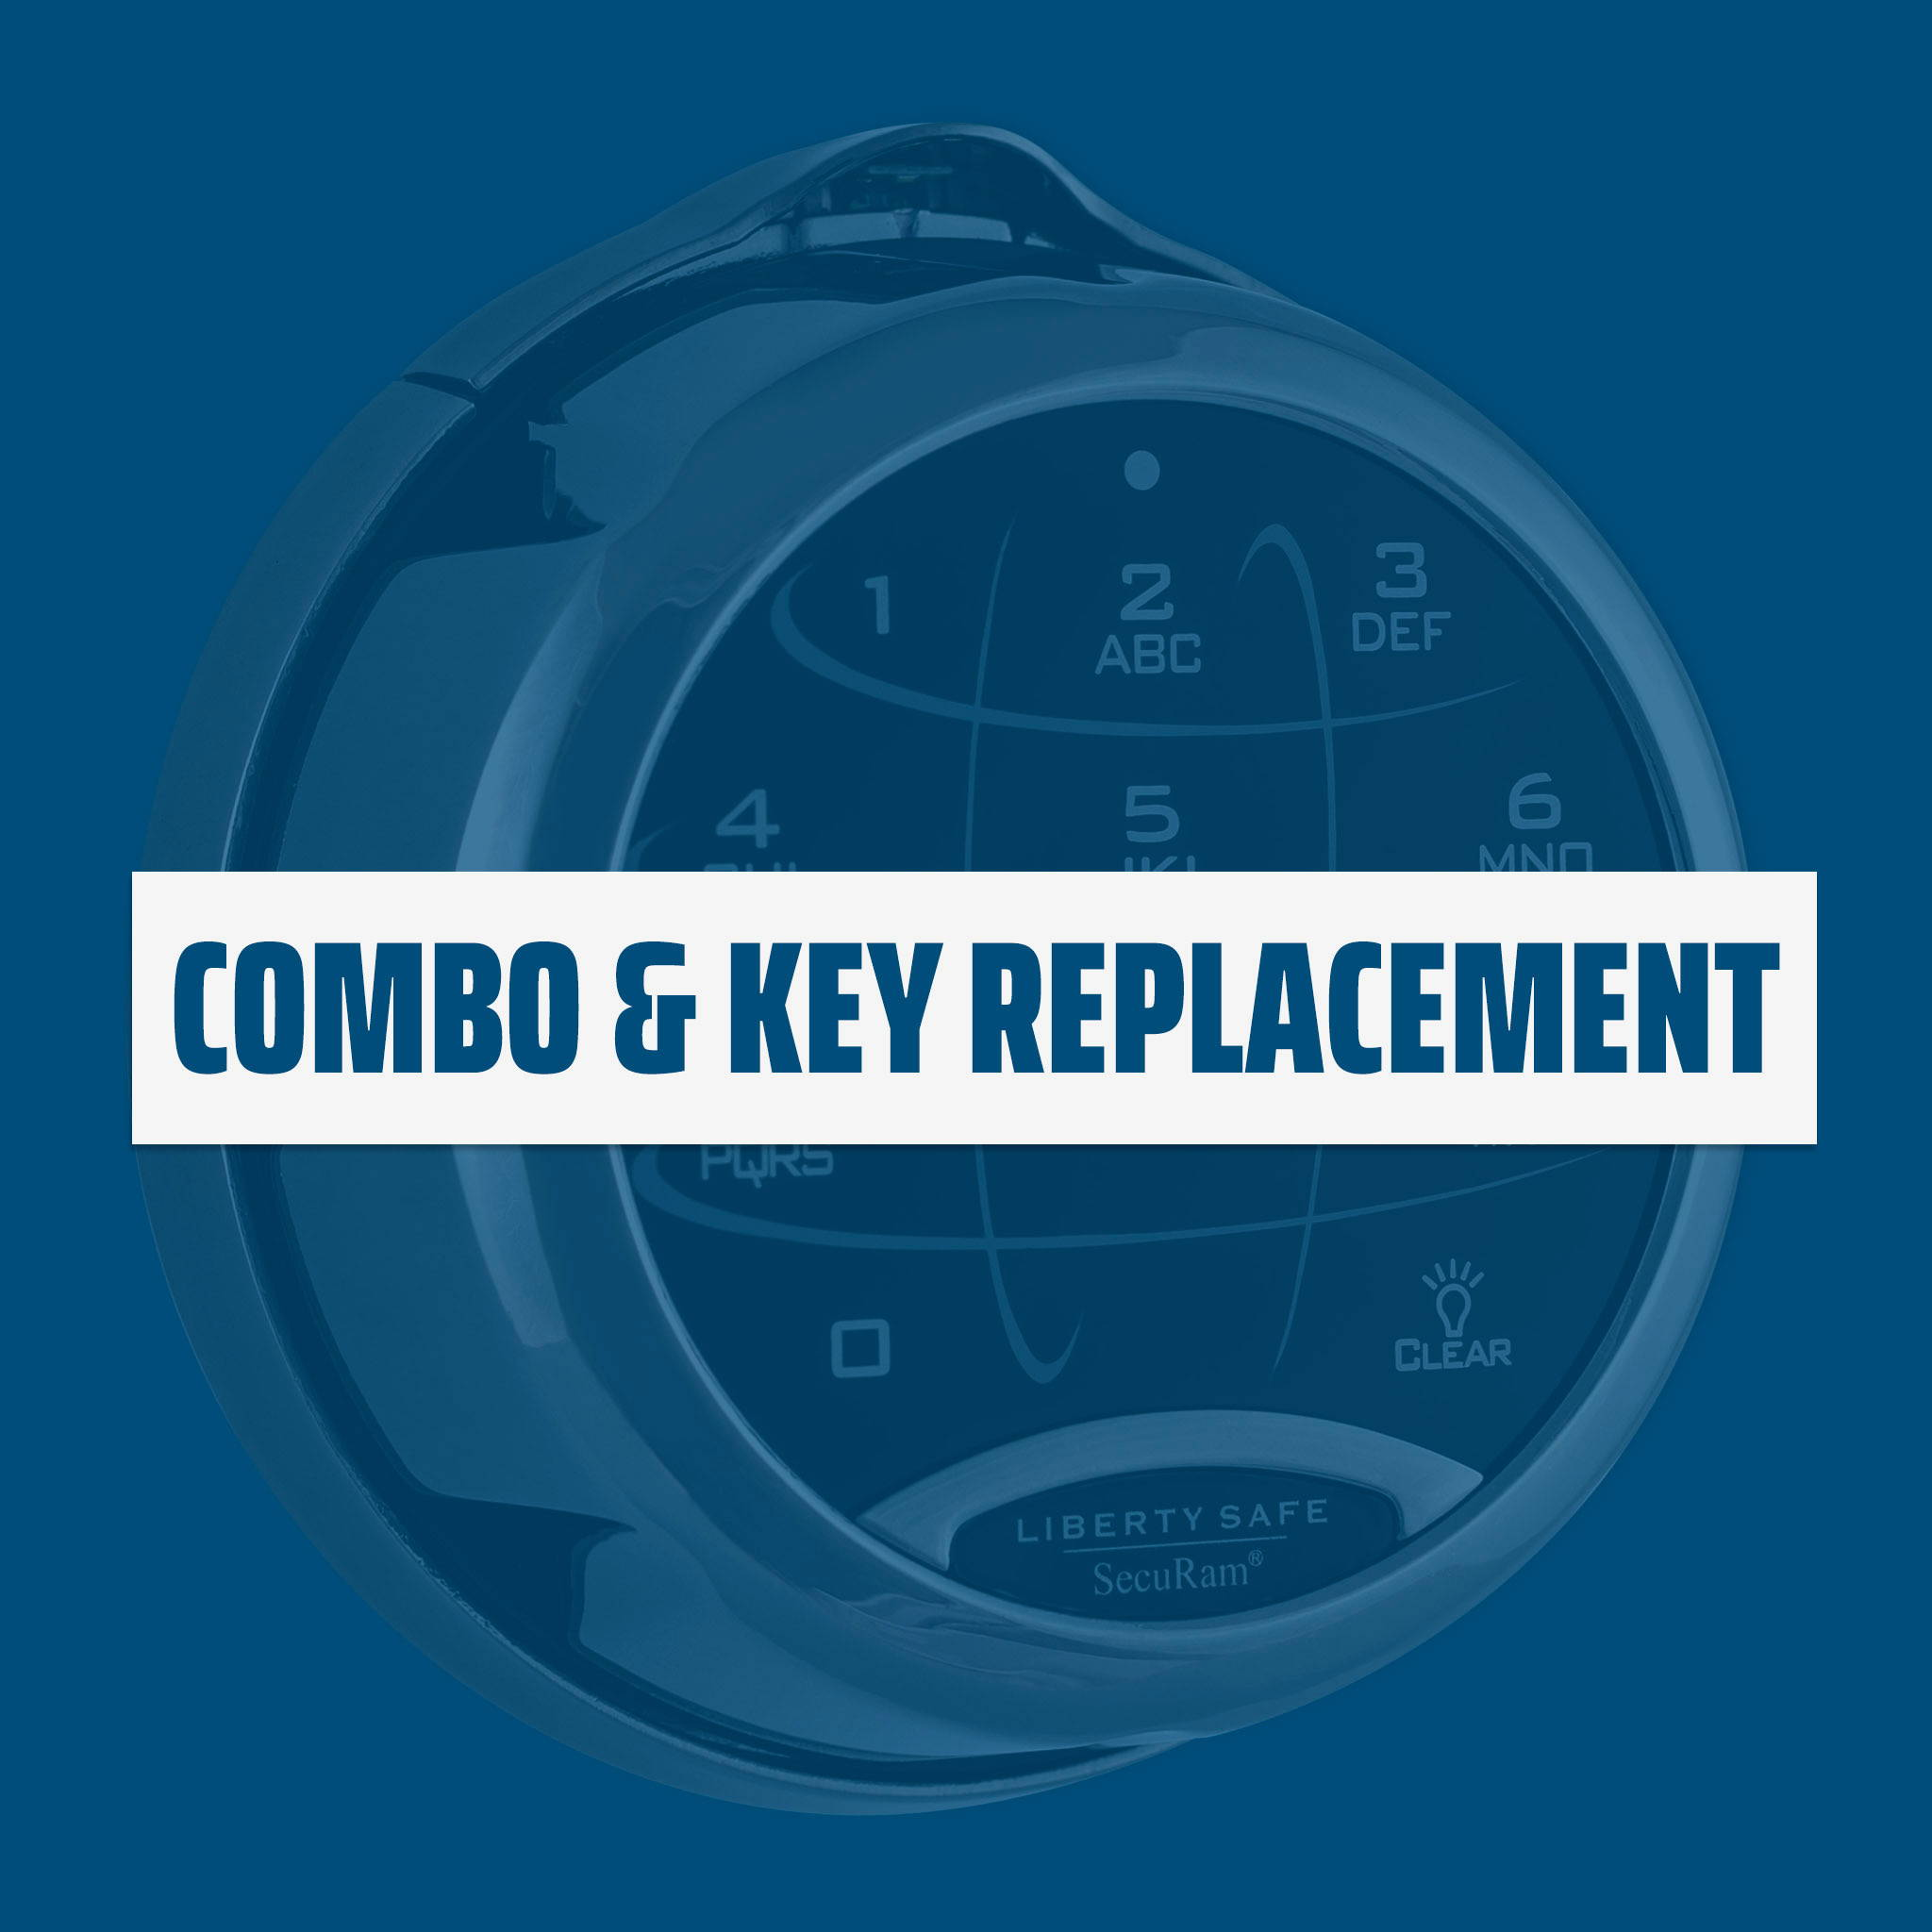 Combo and Key Replacement